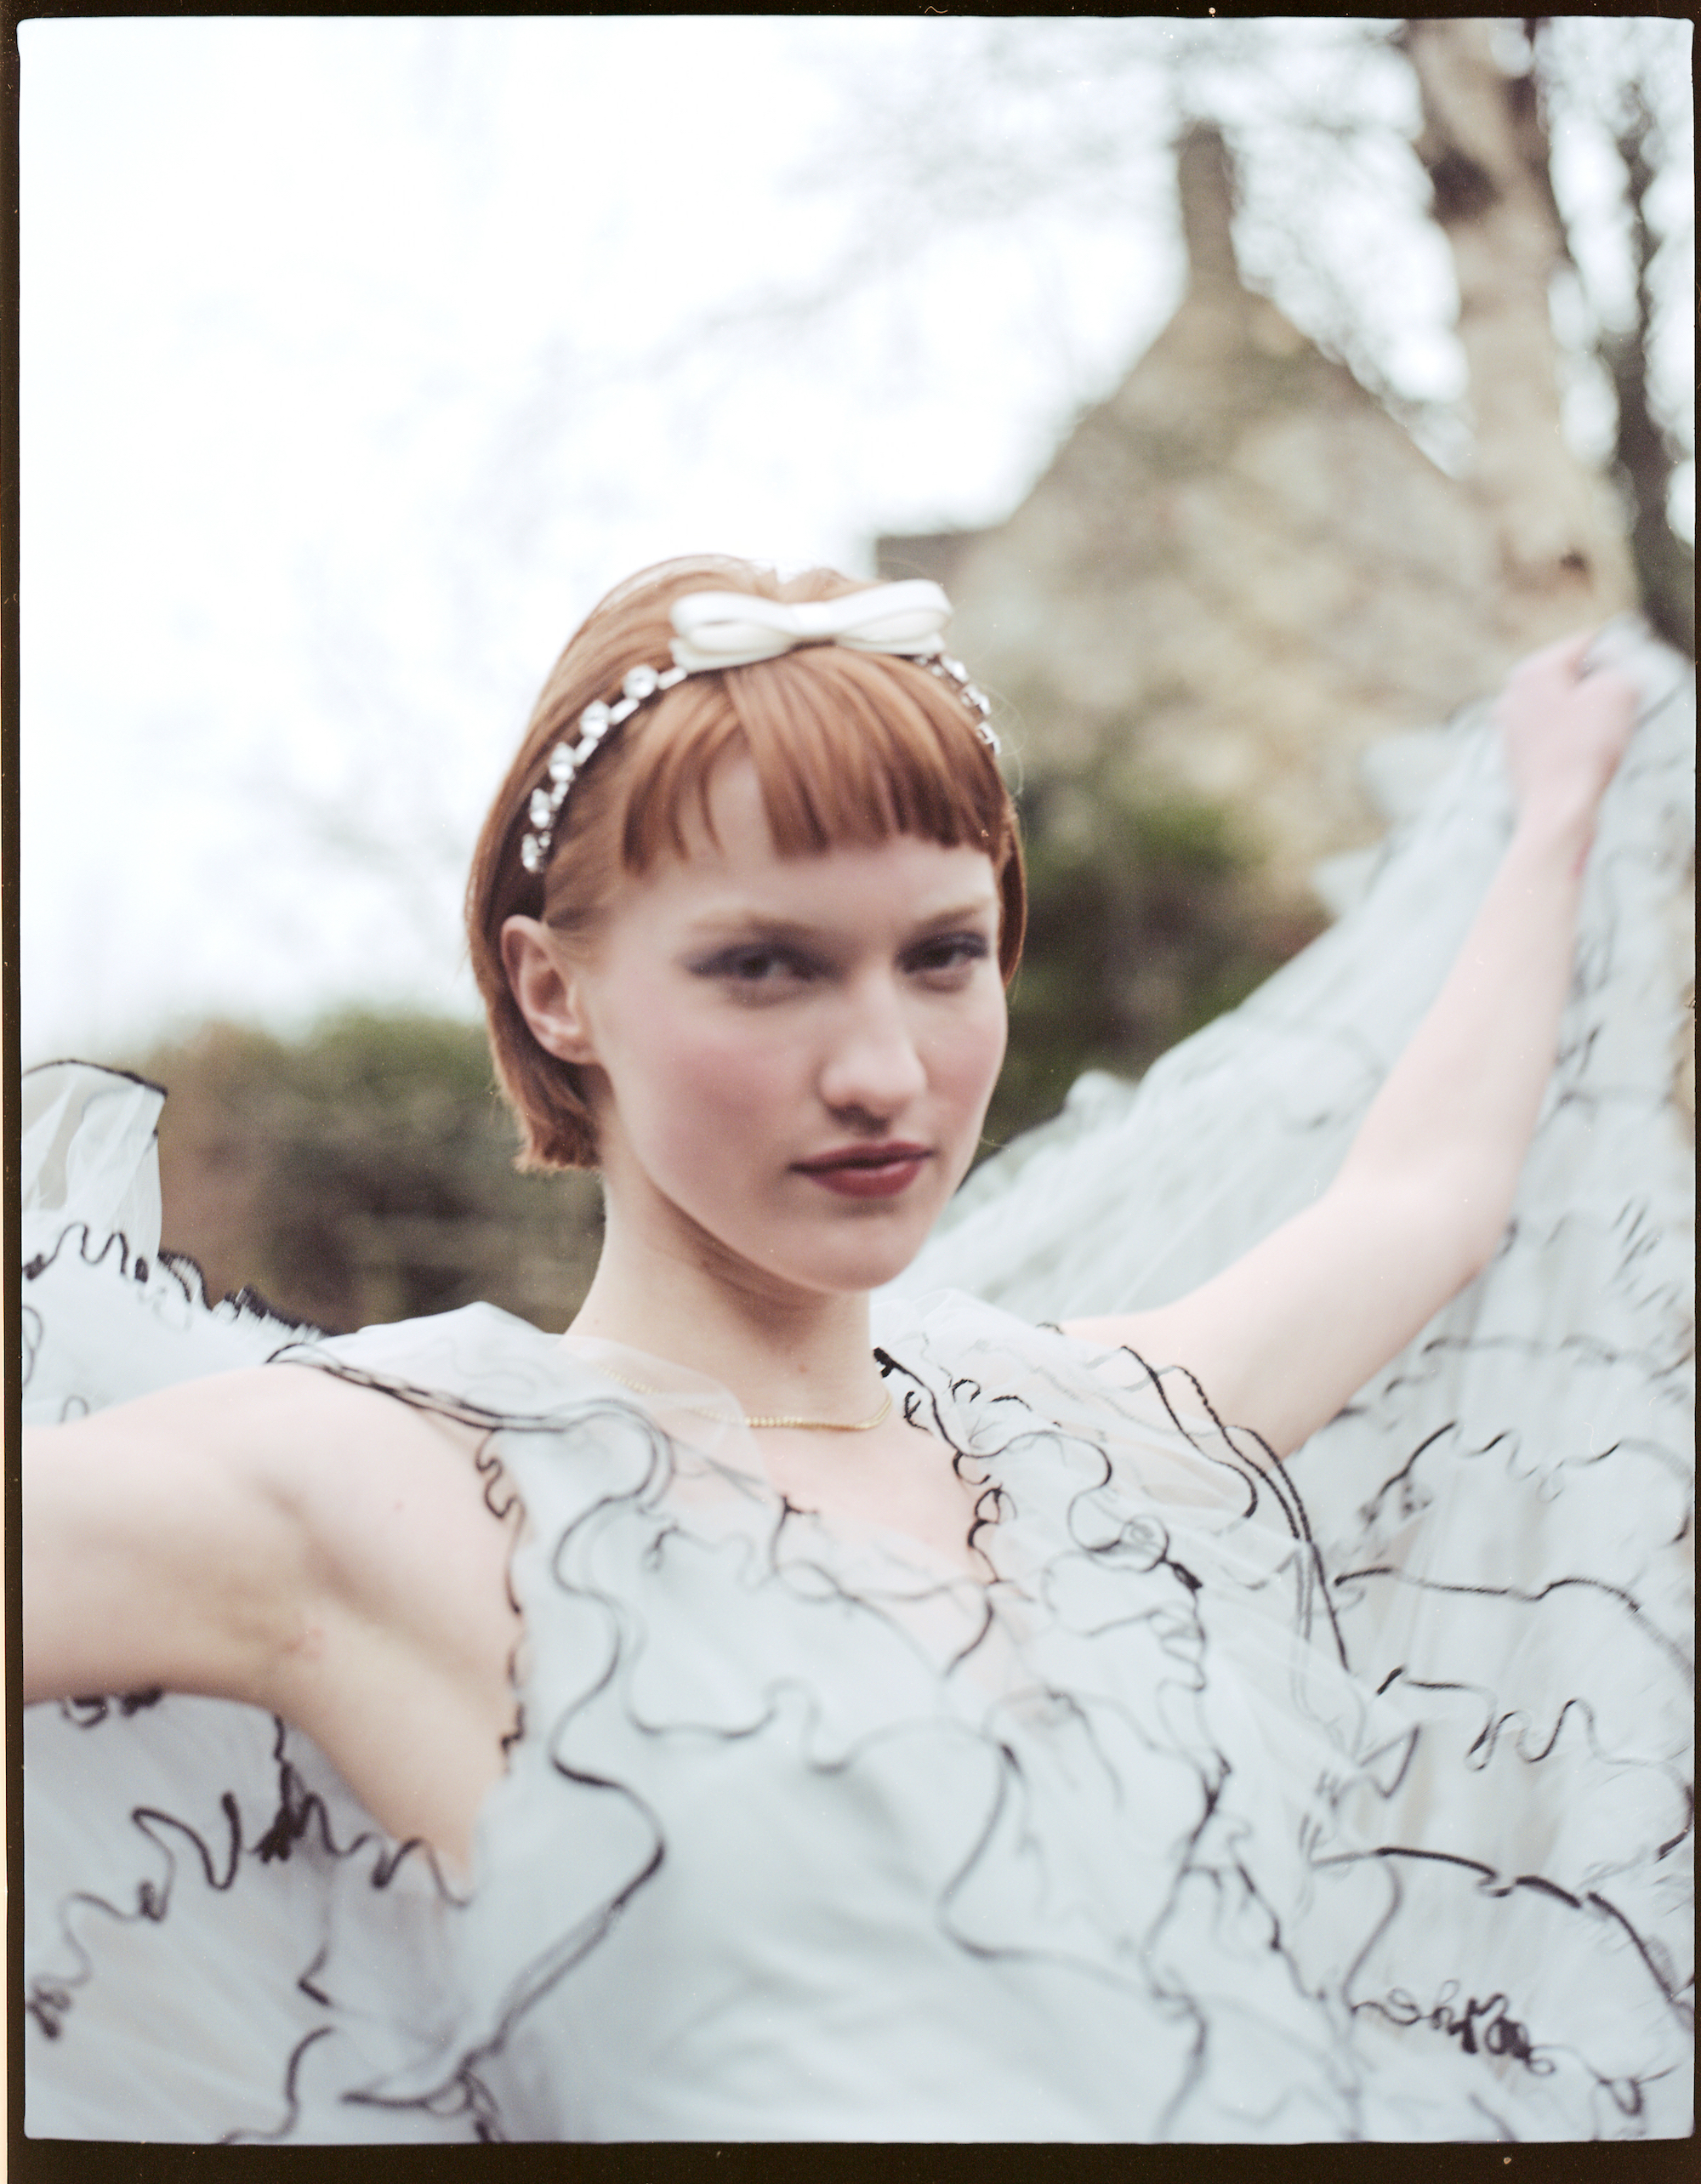 Wuthering heights fashion editorial in the Spring 19 issue of Wonderland white dress stretched